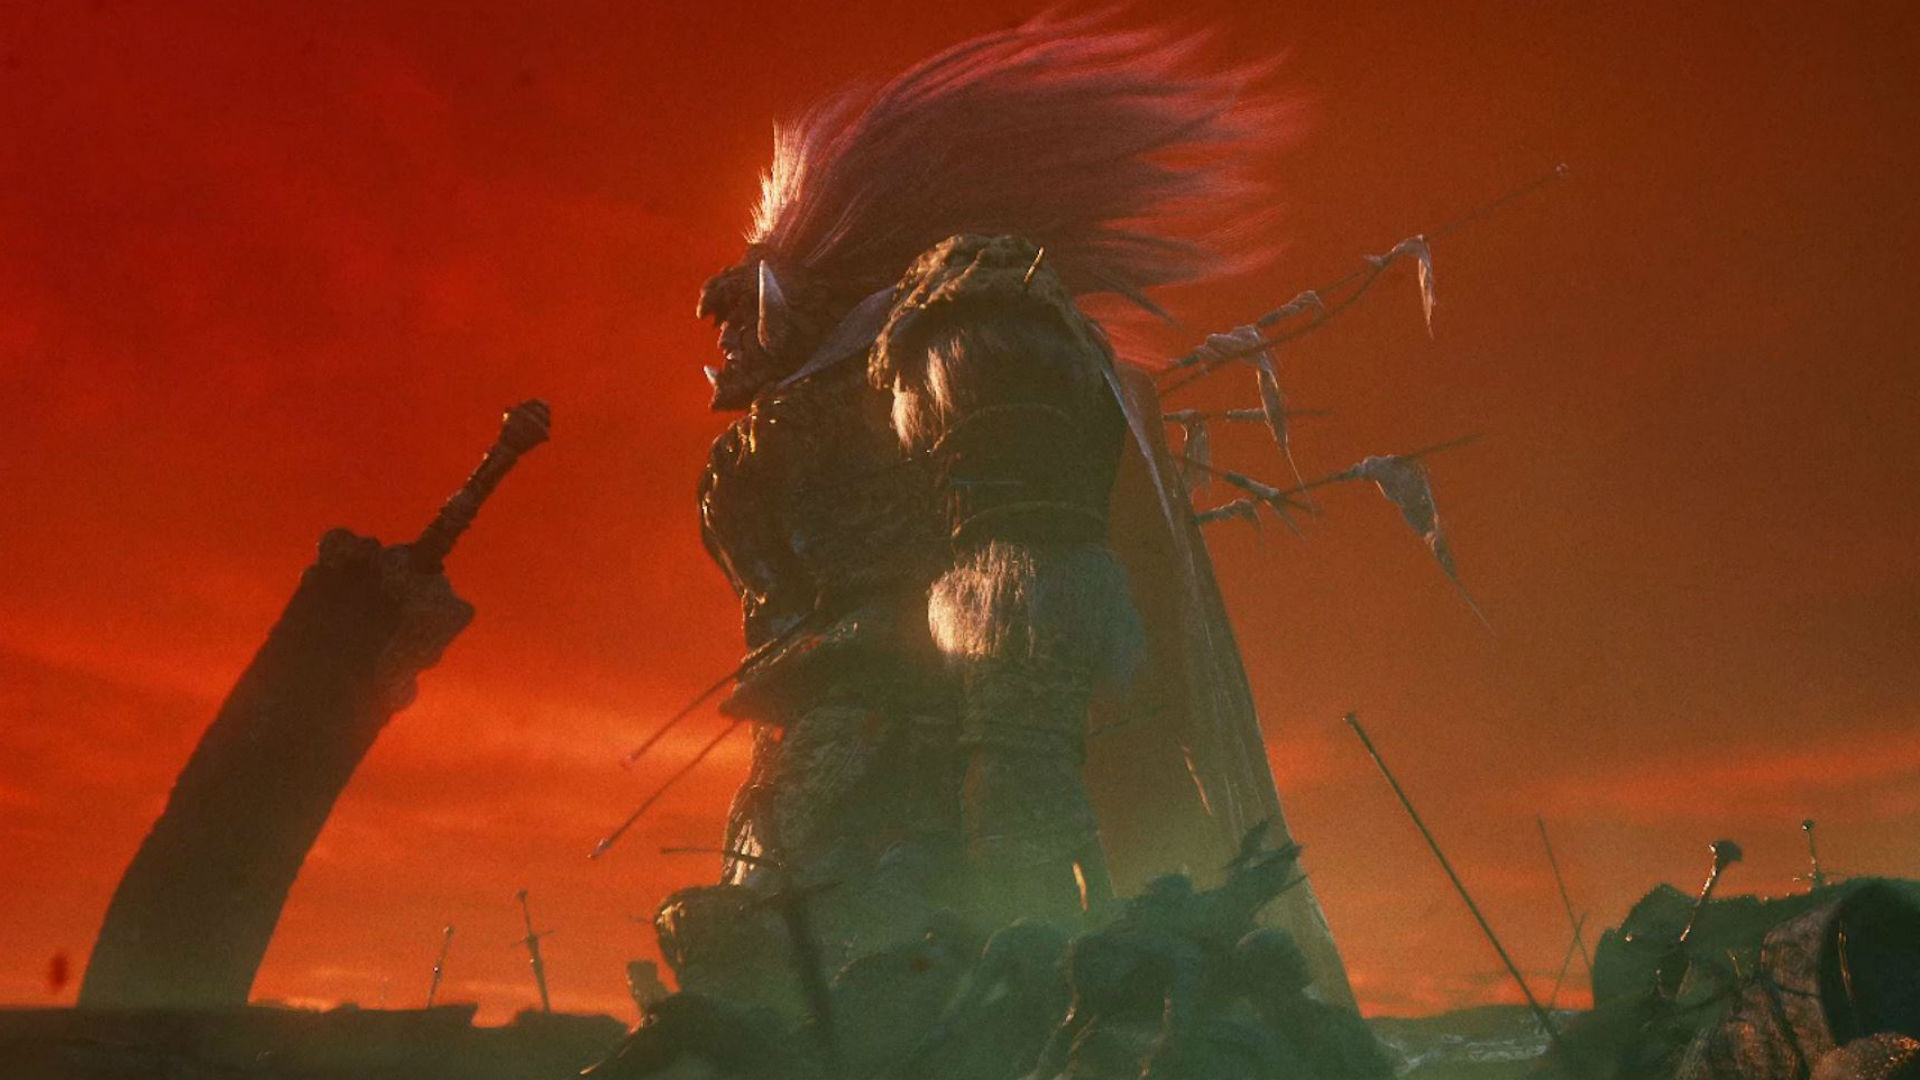 FromSoftware's Elden Ring Release Date Possibly Outed For June 2020